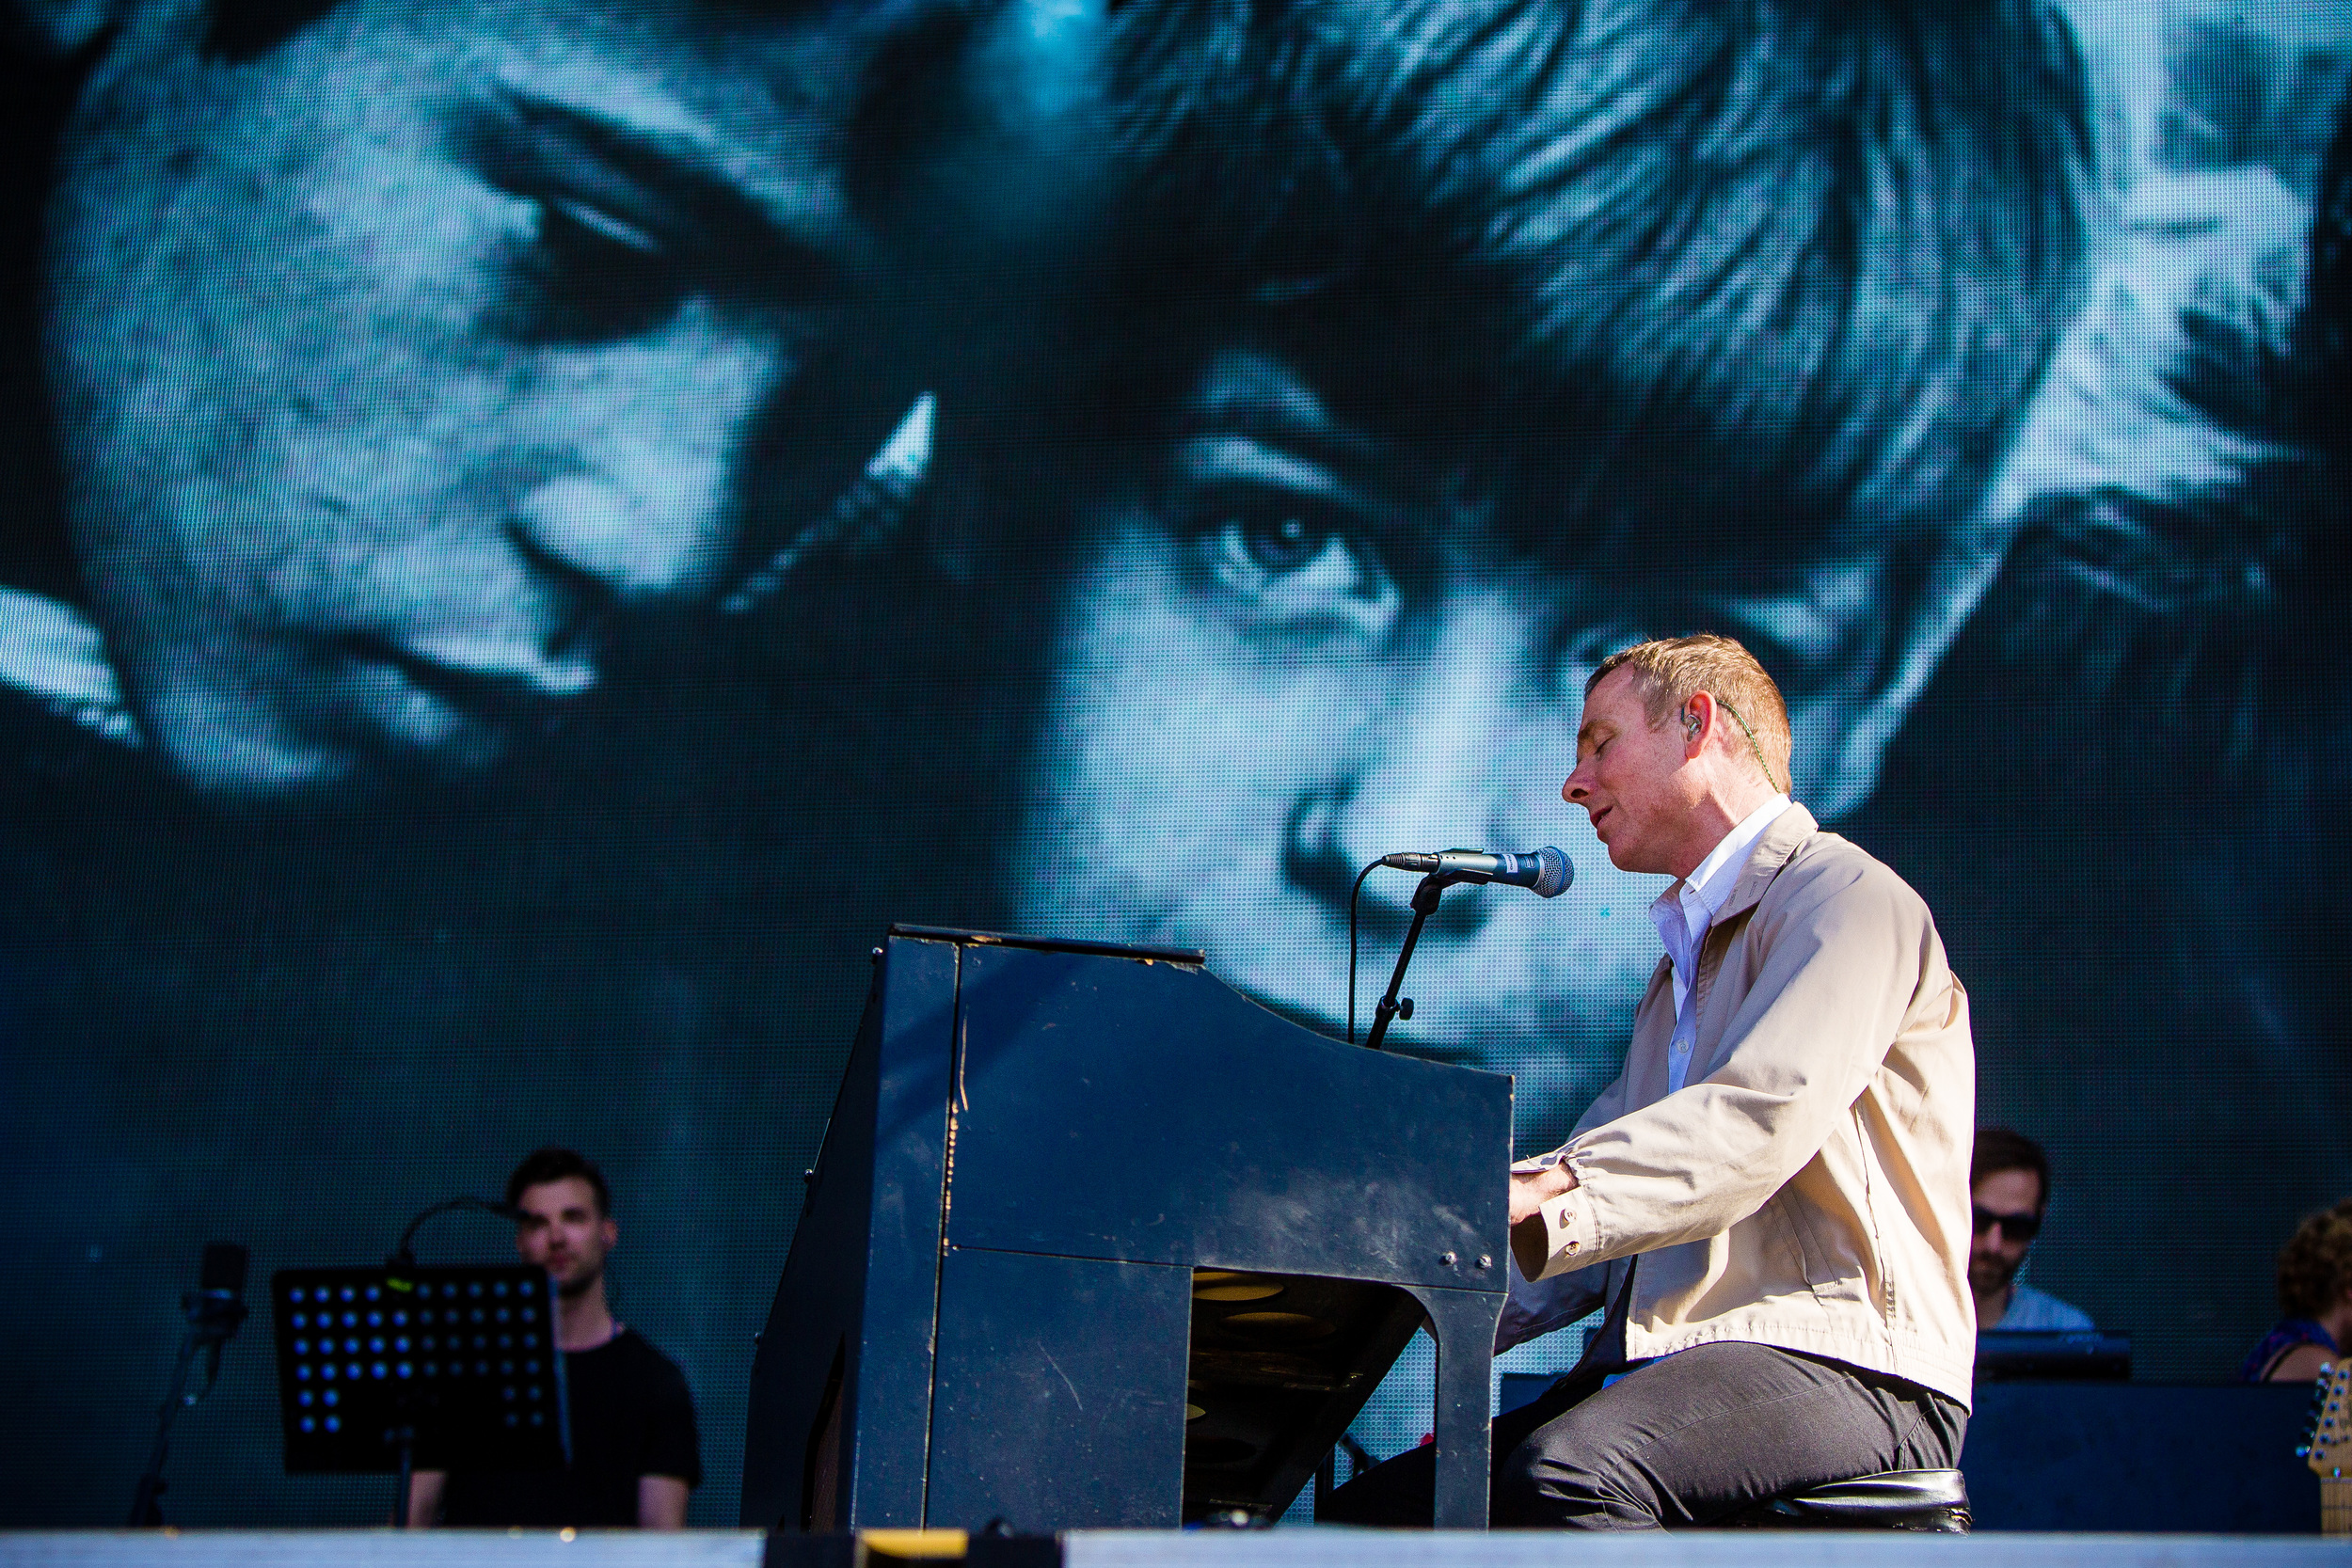 Belle & Sebastian / Way Out West 2015